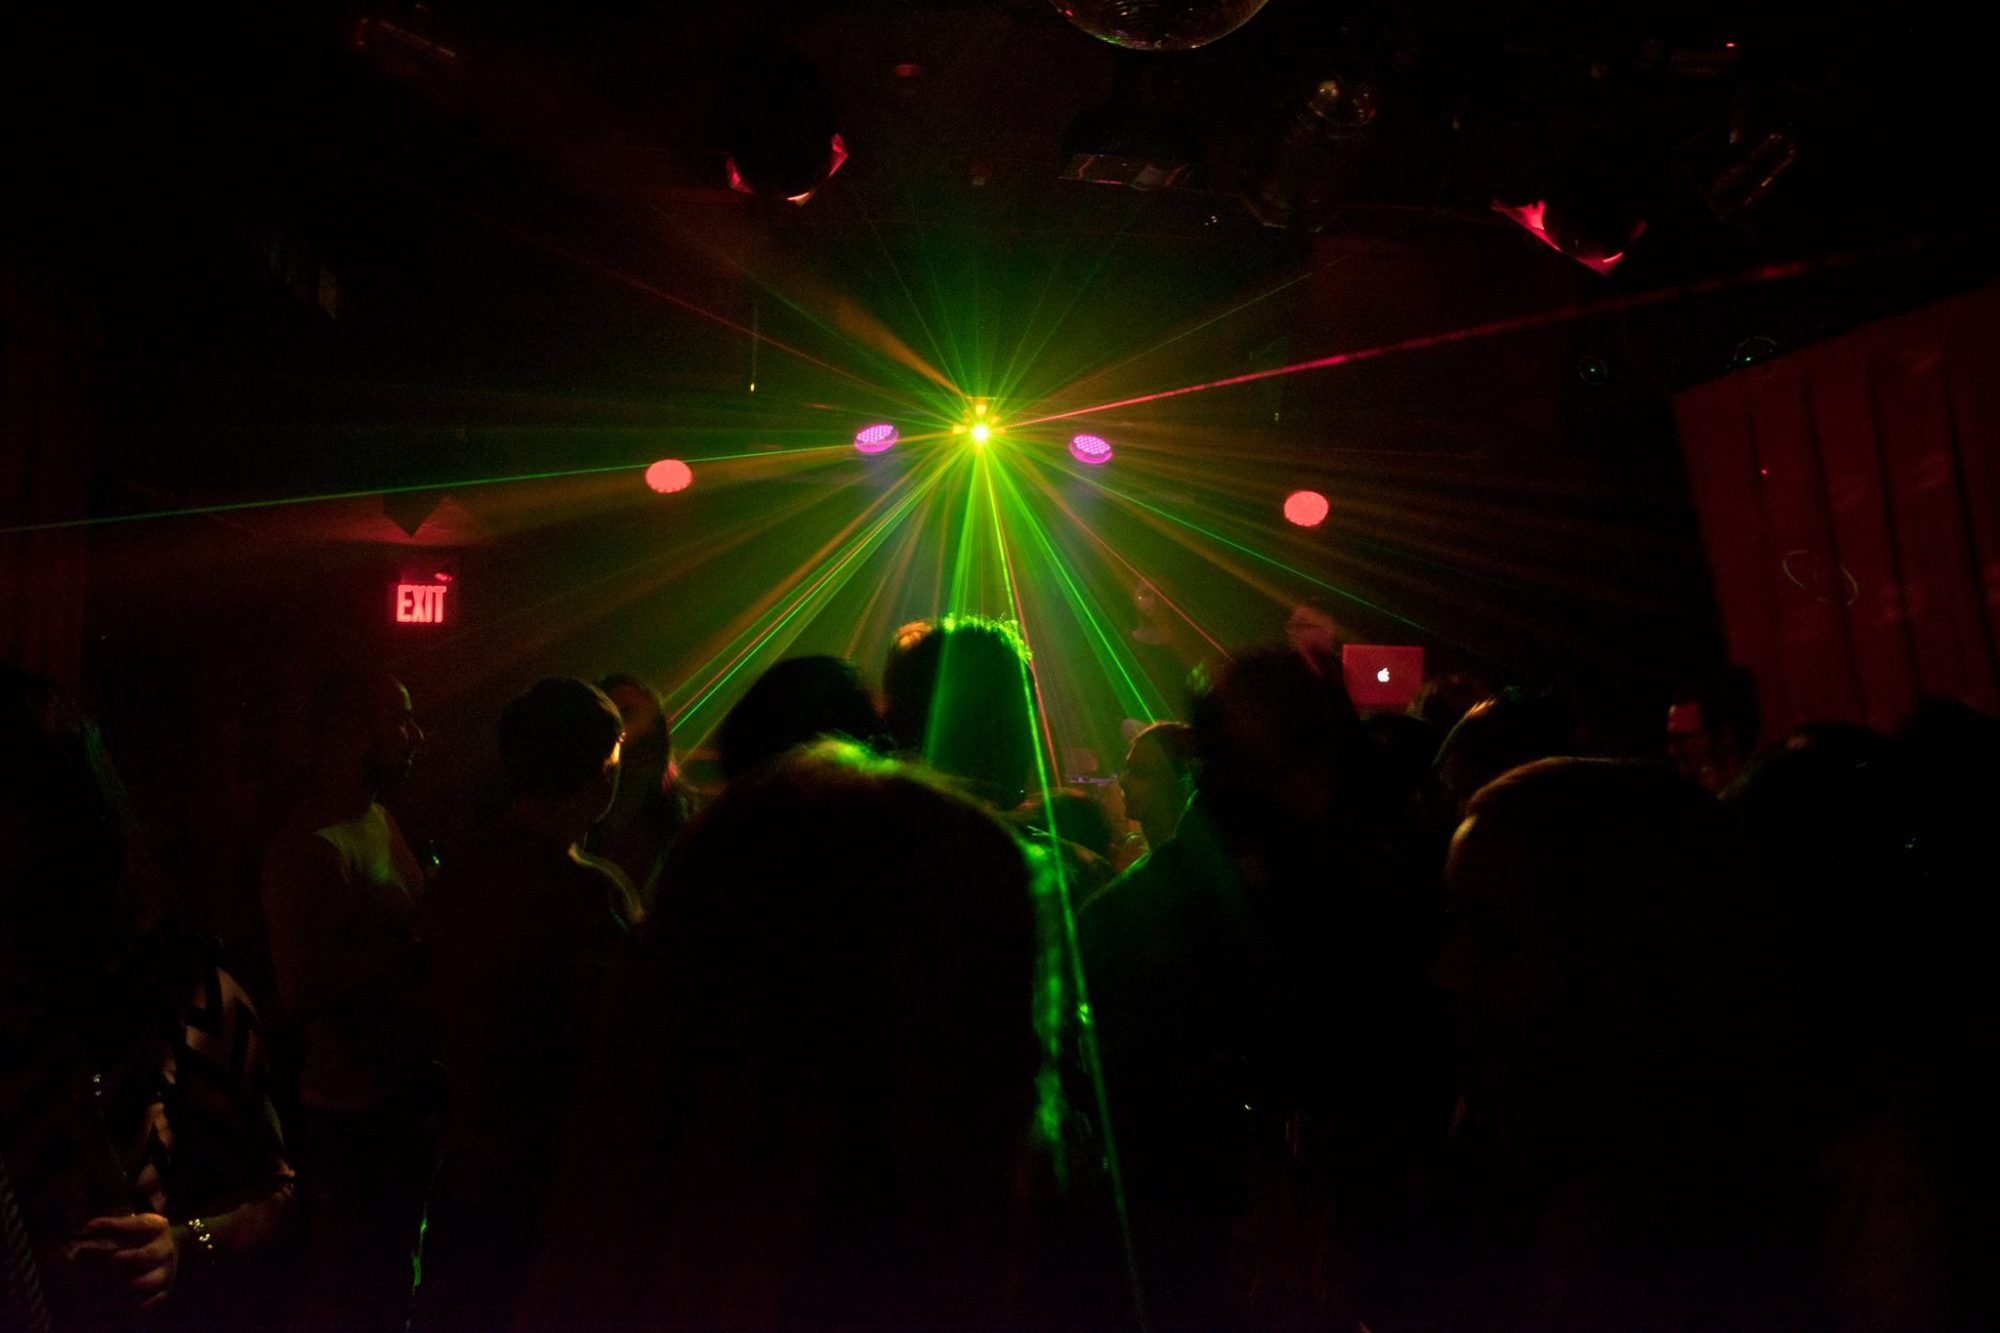 Live Music in Toronto: The Piston is an intimate venue with an incredible lighting rig.